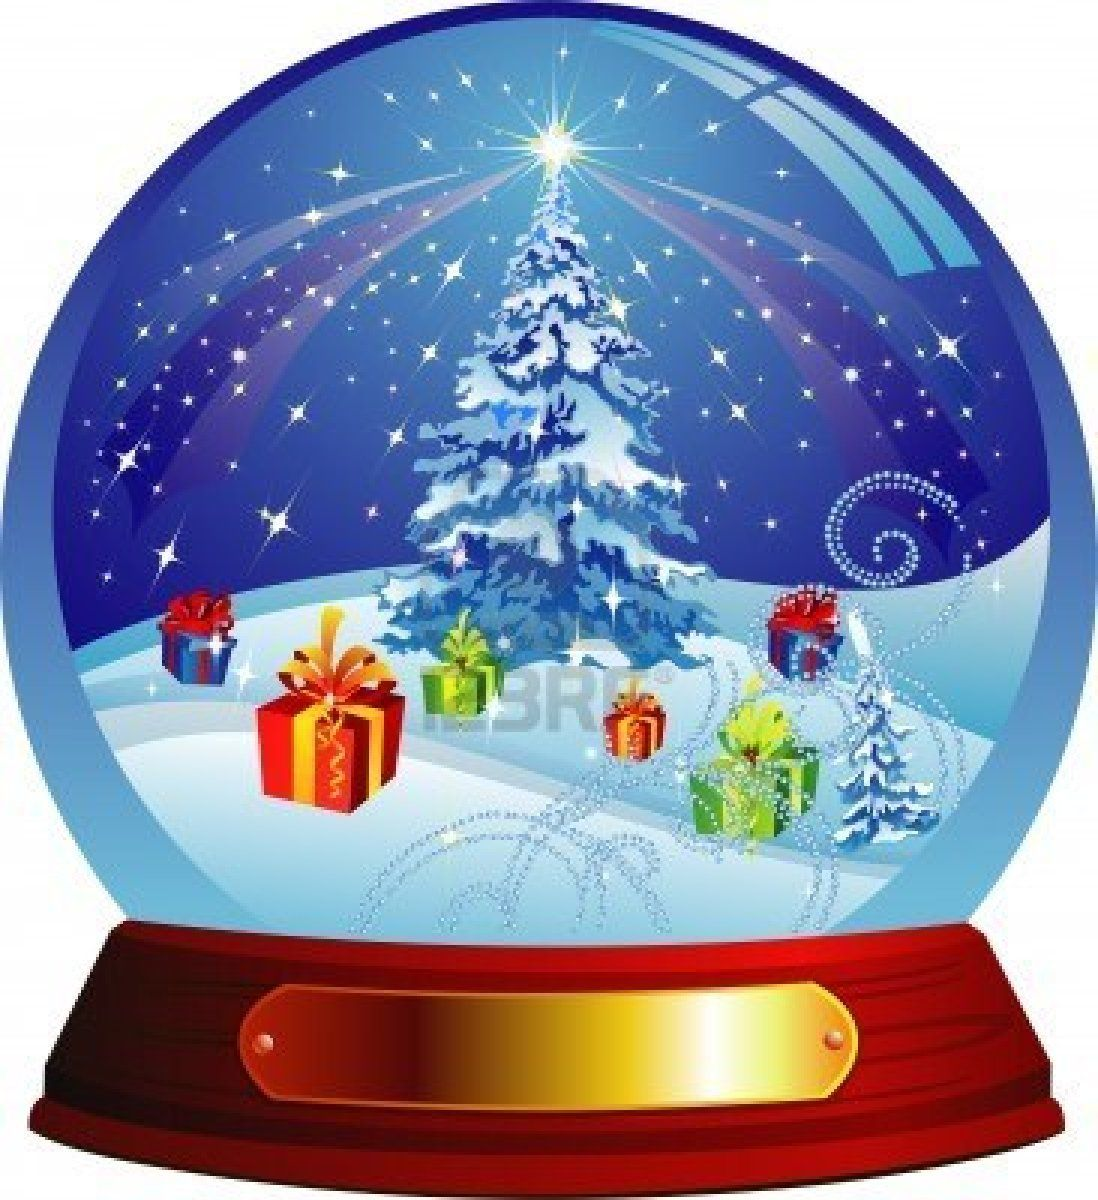 Clip Art Snow Globe Clipart snow globe animated clip art christmas globes art